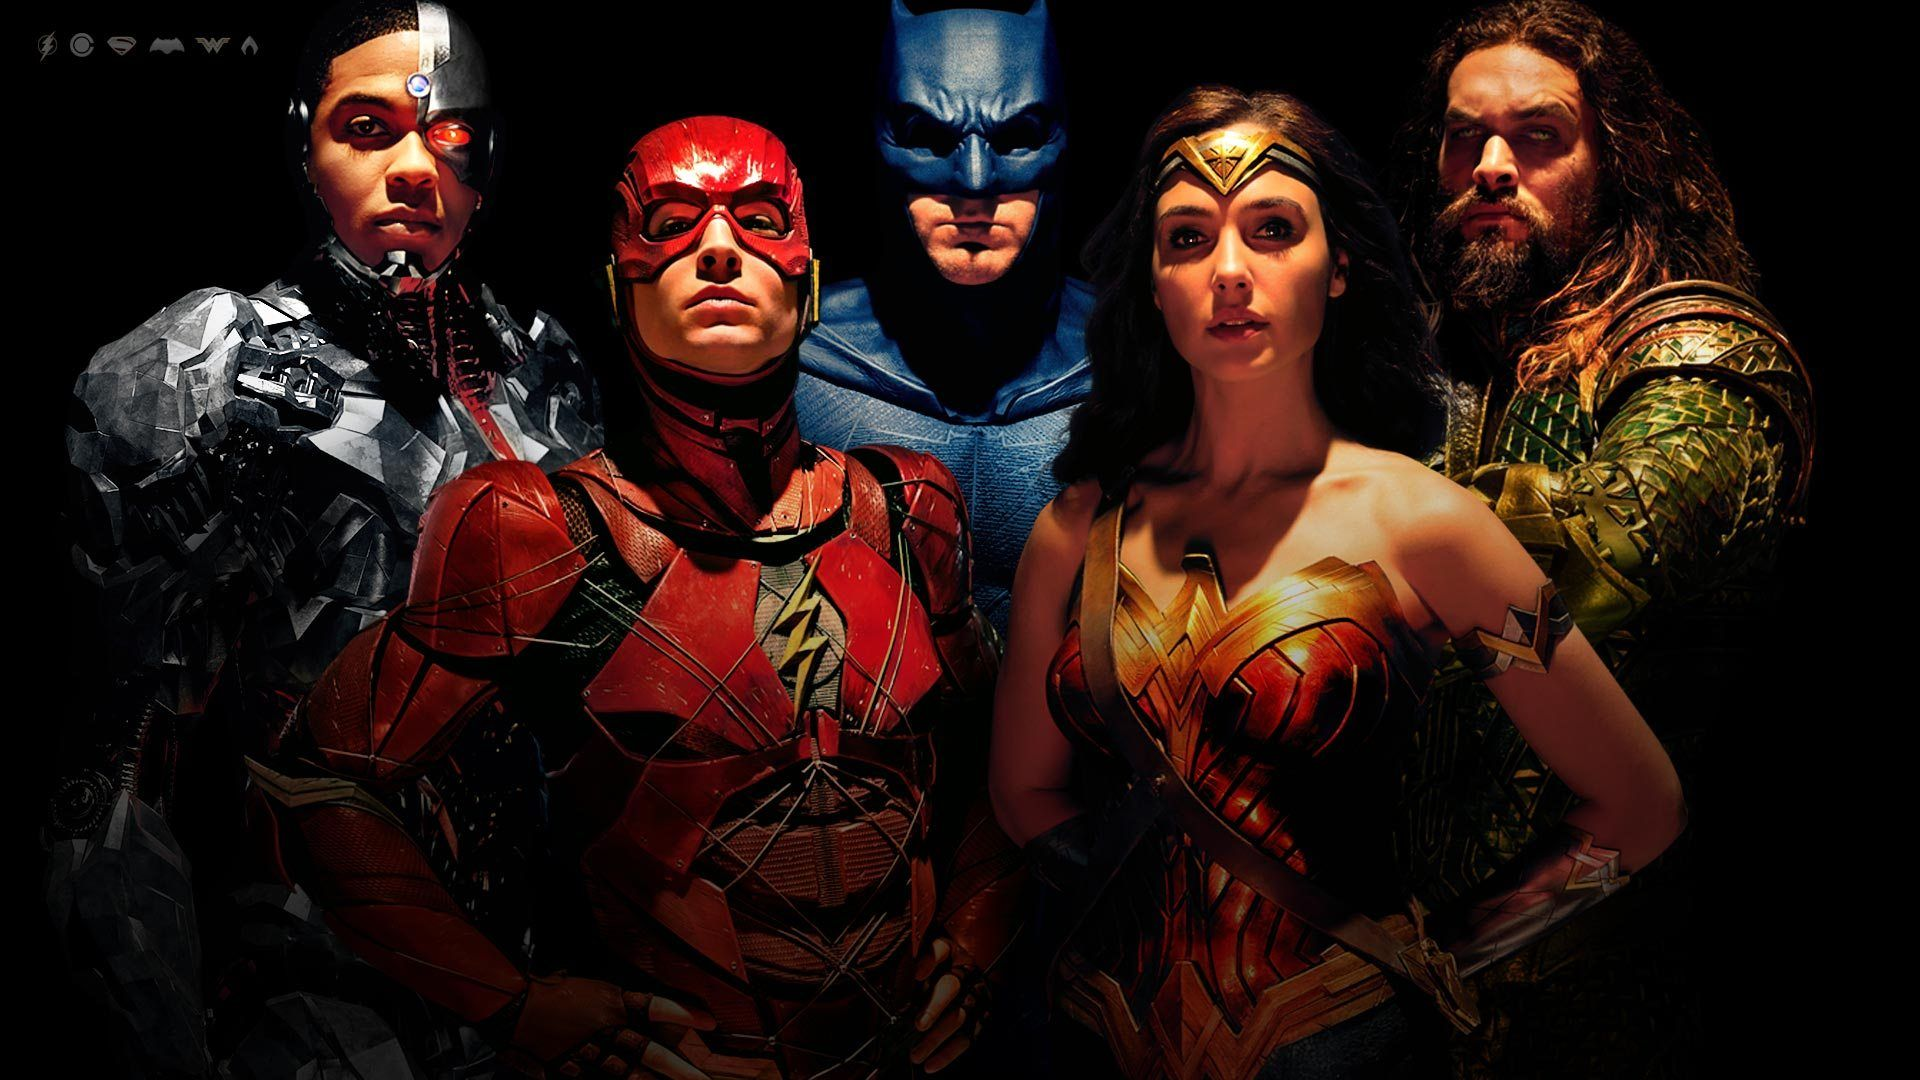 The Definitive Chronological Order Of The DC Extended Universe